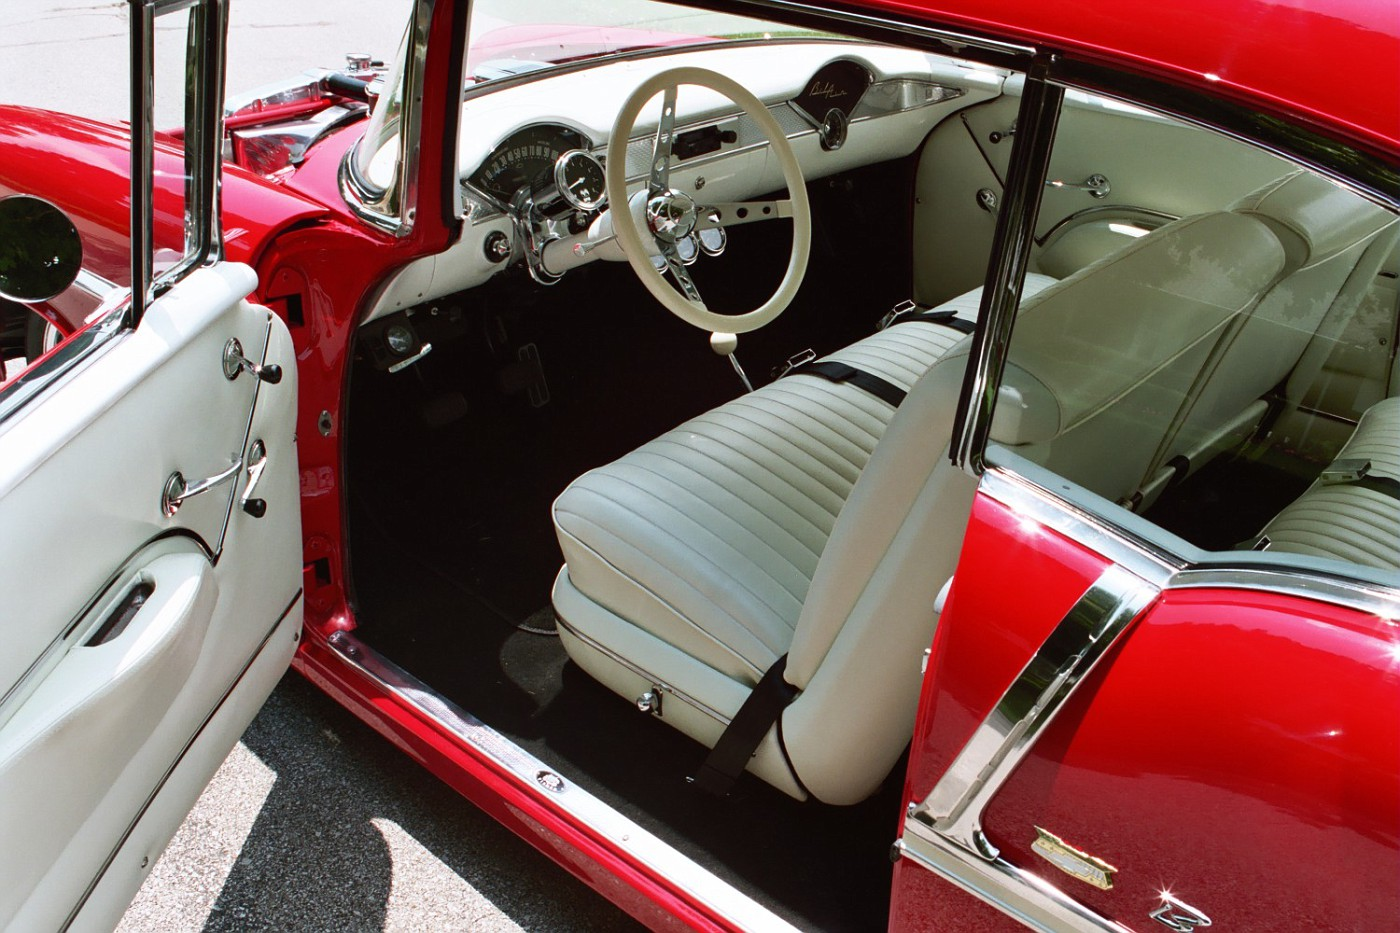 55 Chevy Old Style Interior